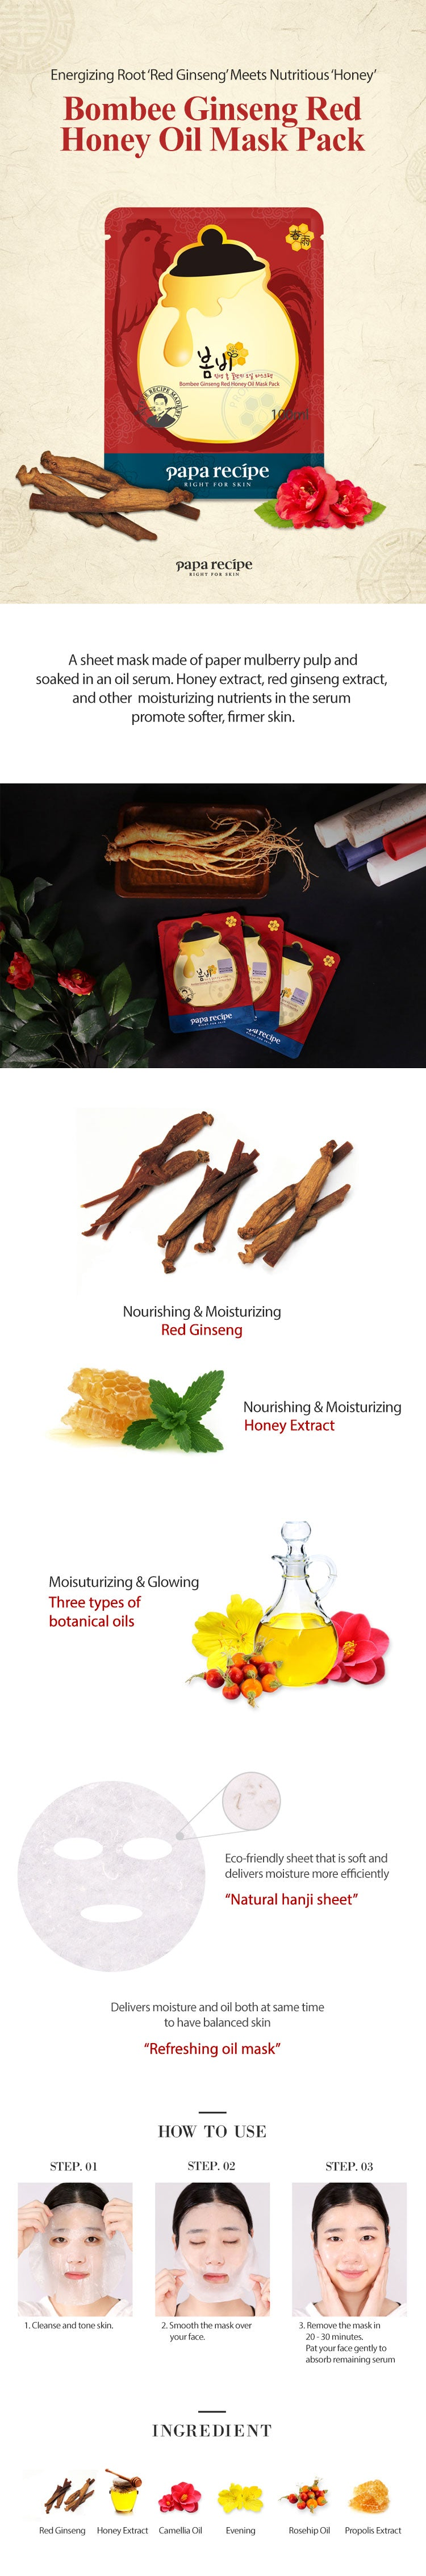 Papa-Recipe Bombee Ginseng Red Honey Oil Mask